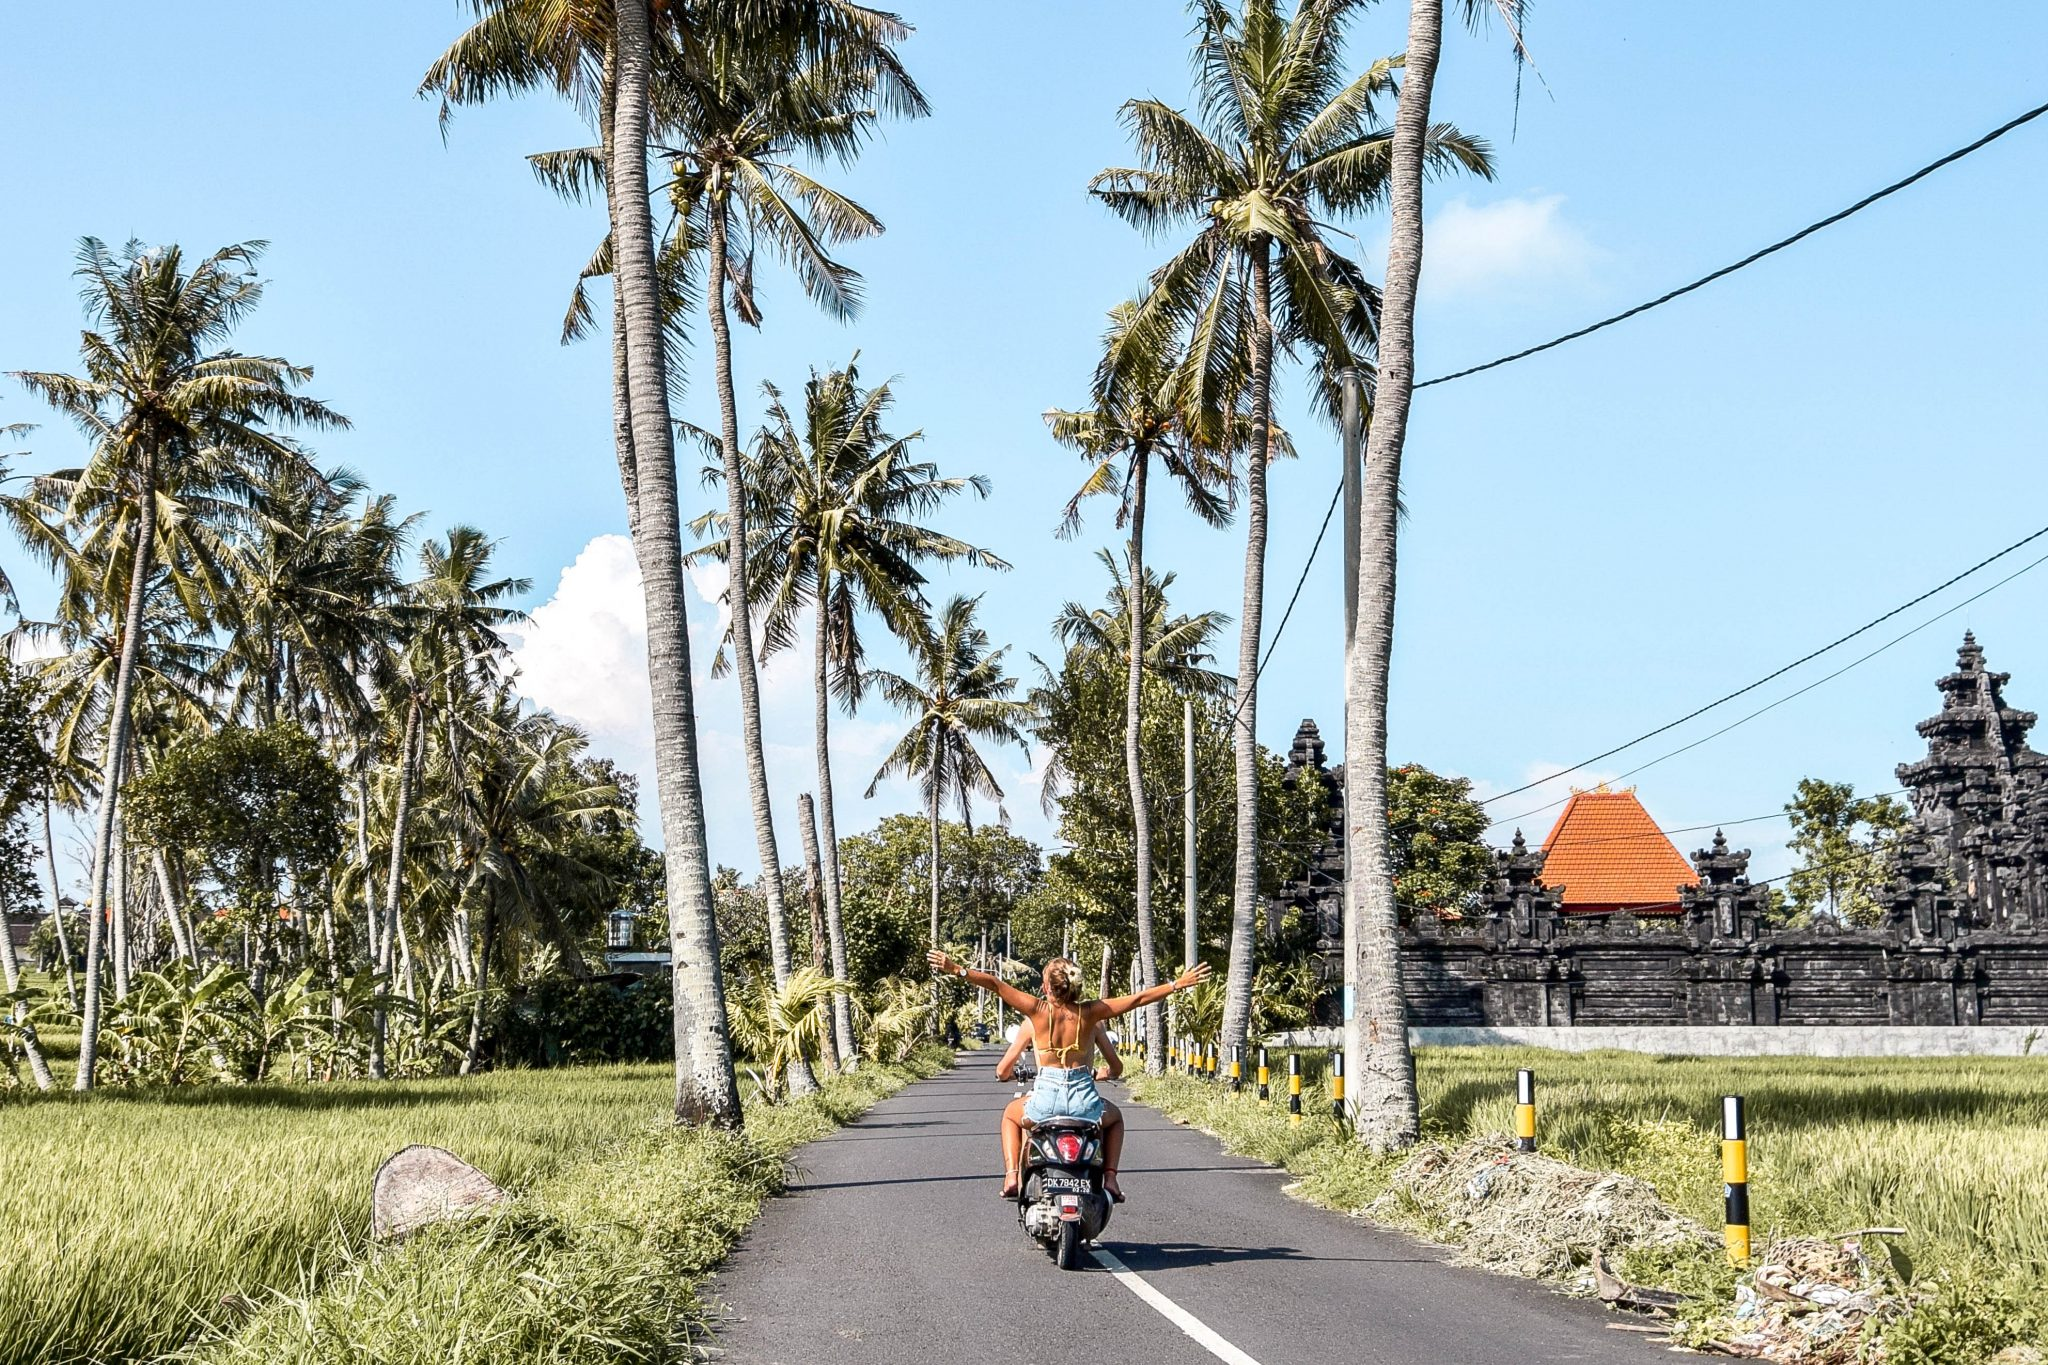 Wanderers & Warriors - Charlie & Lauren UK Travel Couple - 13 Things To Do In Canggu Bali - Scooter Canggu Bali